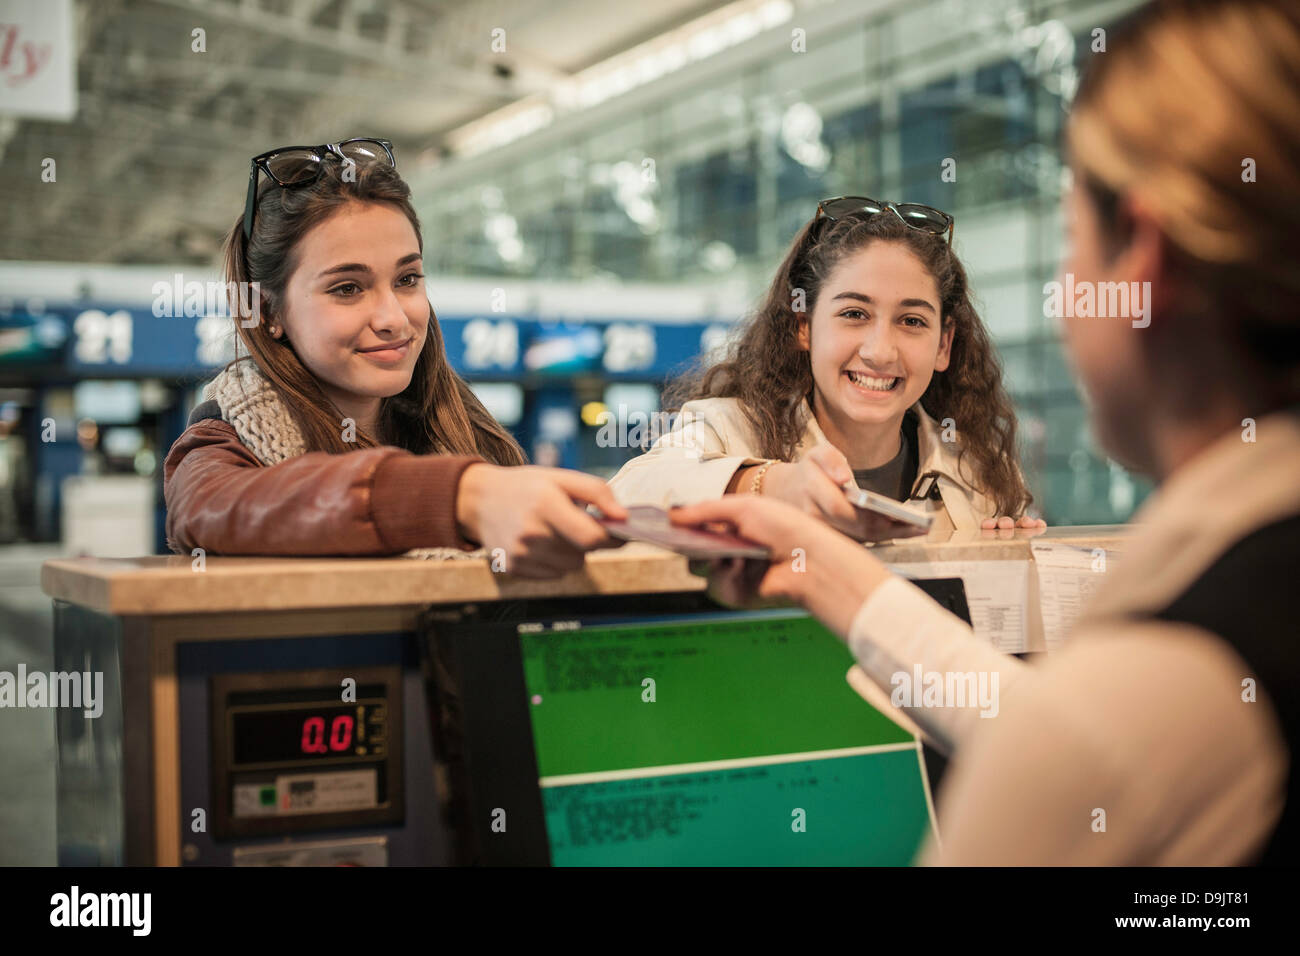 Two teenage girls at airport check in area - Stock Image